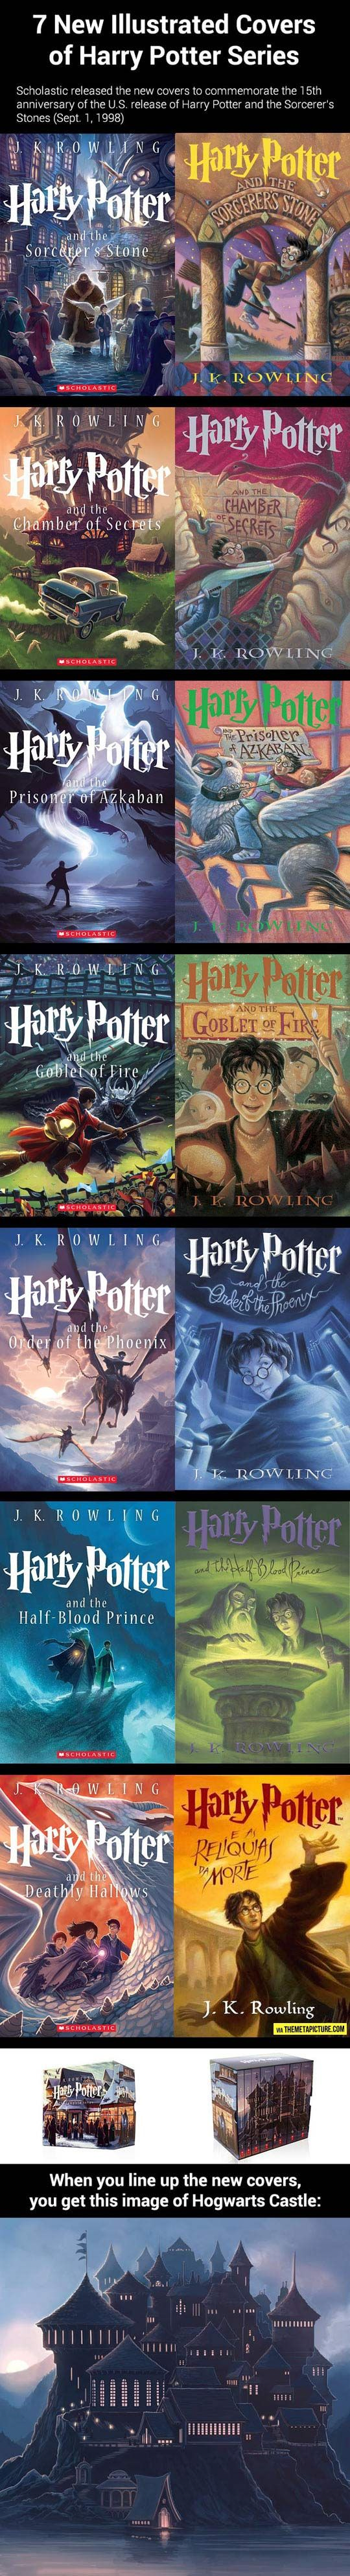 Illustrated Book Cover Ideas : Best harry potter box set ideas on pinterest